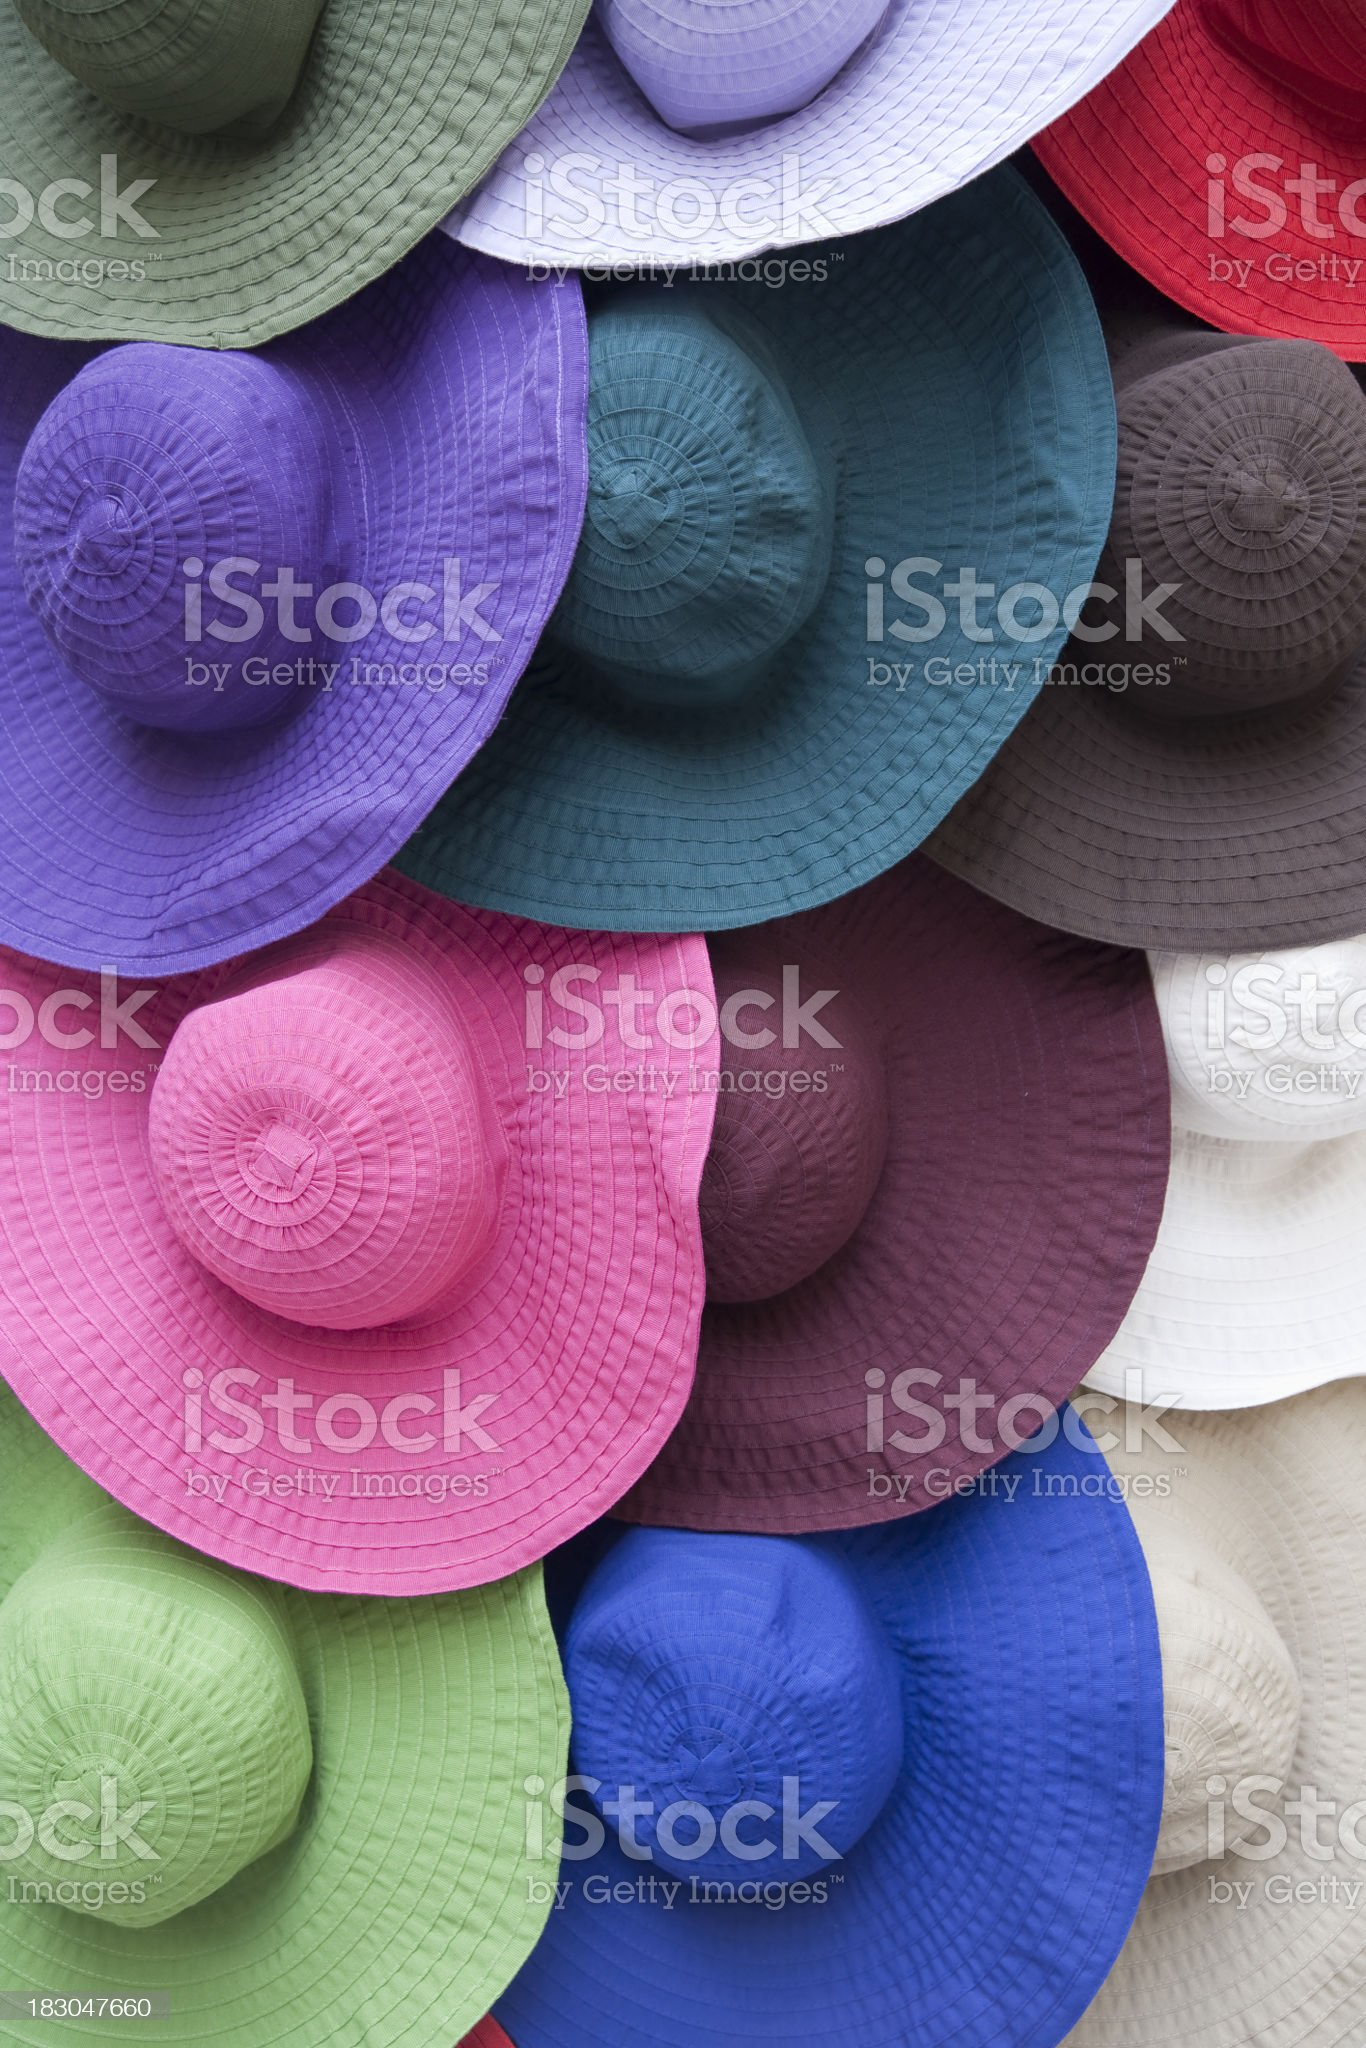 Multicolored hats royalty-free stock photo